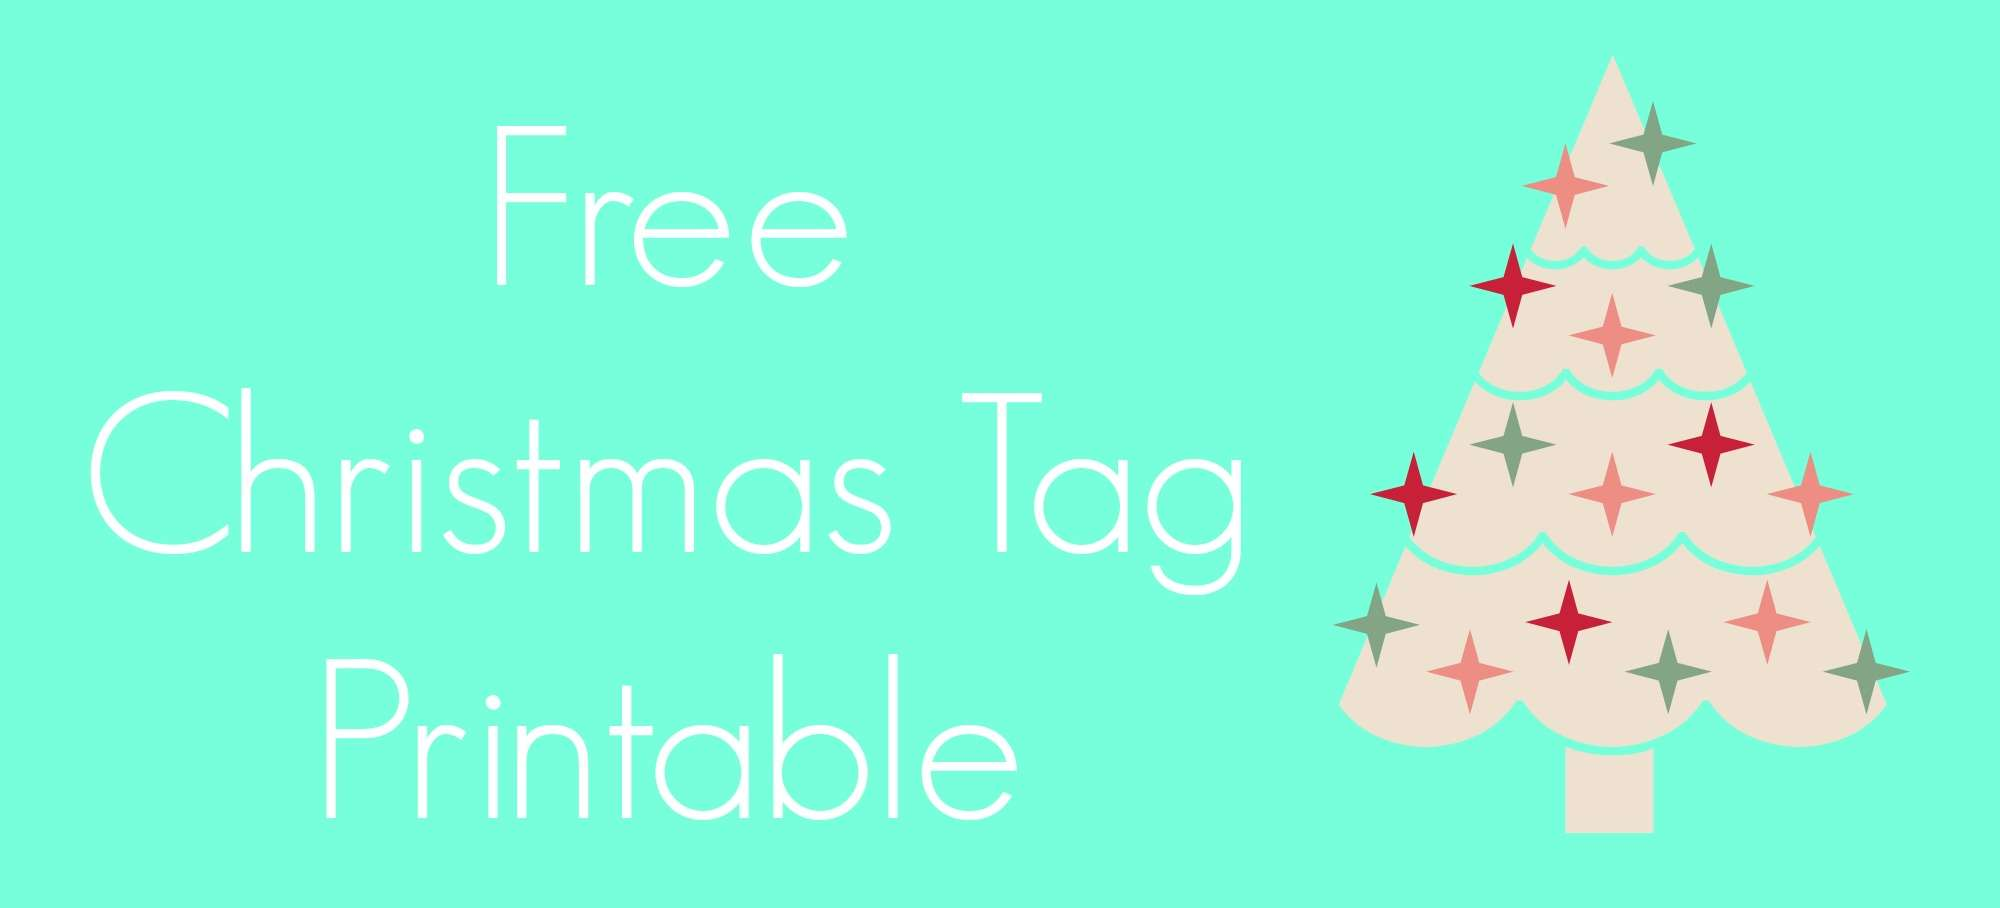 photo regarding Christmas Tag Printable named Absolutely free Xmas Tag Printable! - Pennies into Pearls